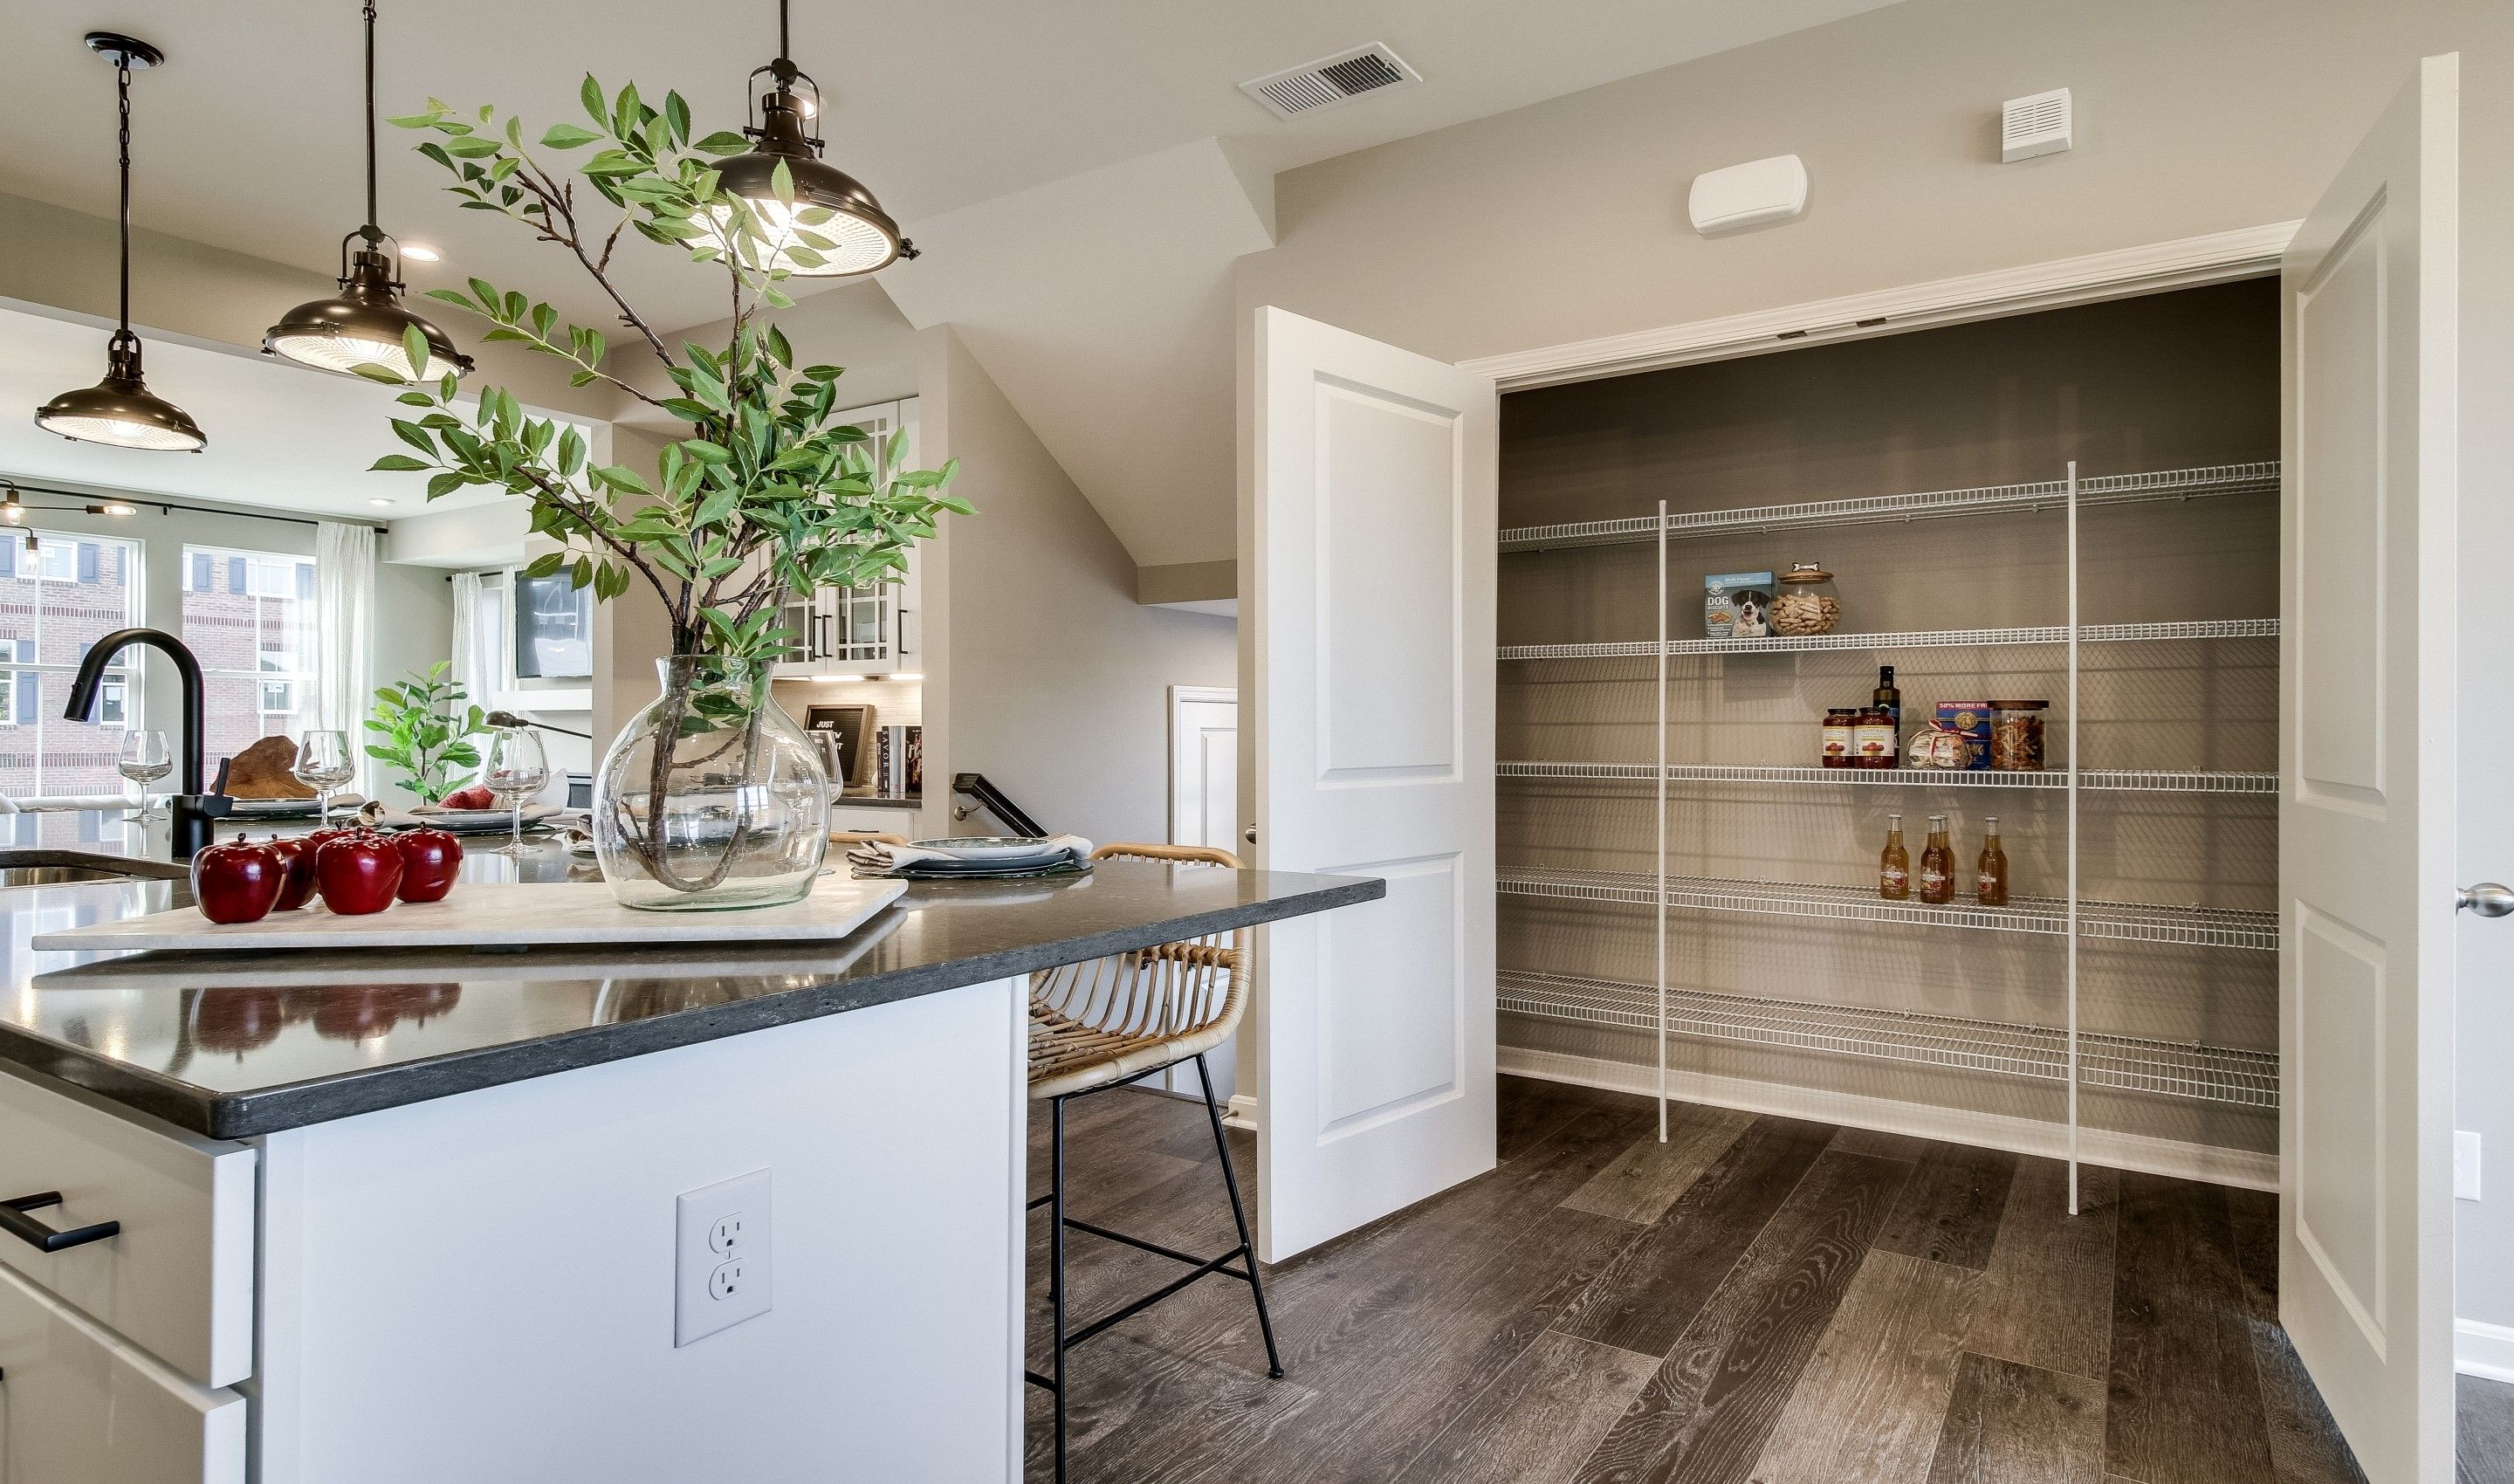 Kitchen featured in the Whitworth By K. Hovnanian® Homes in Washington, VA